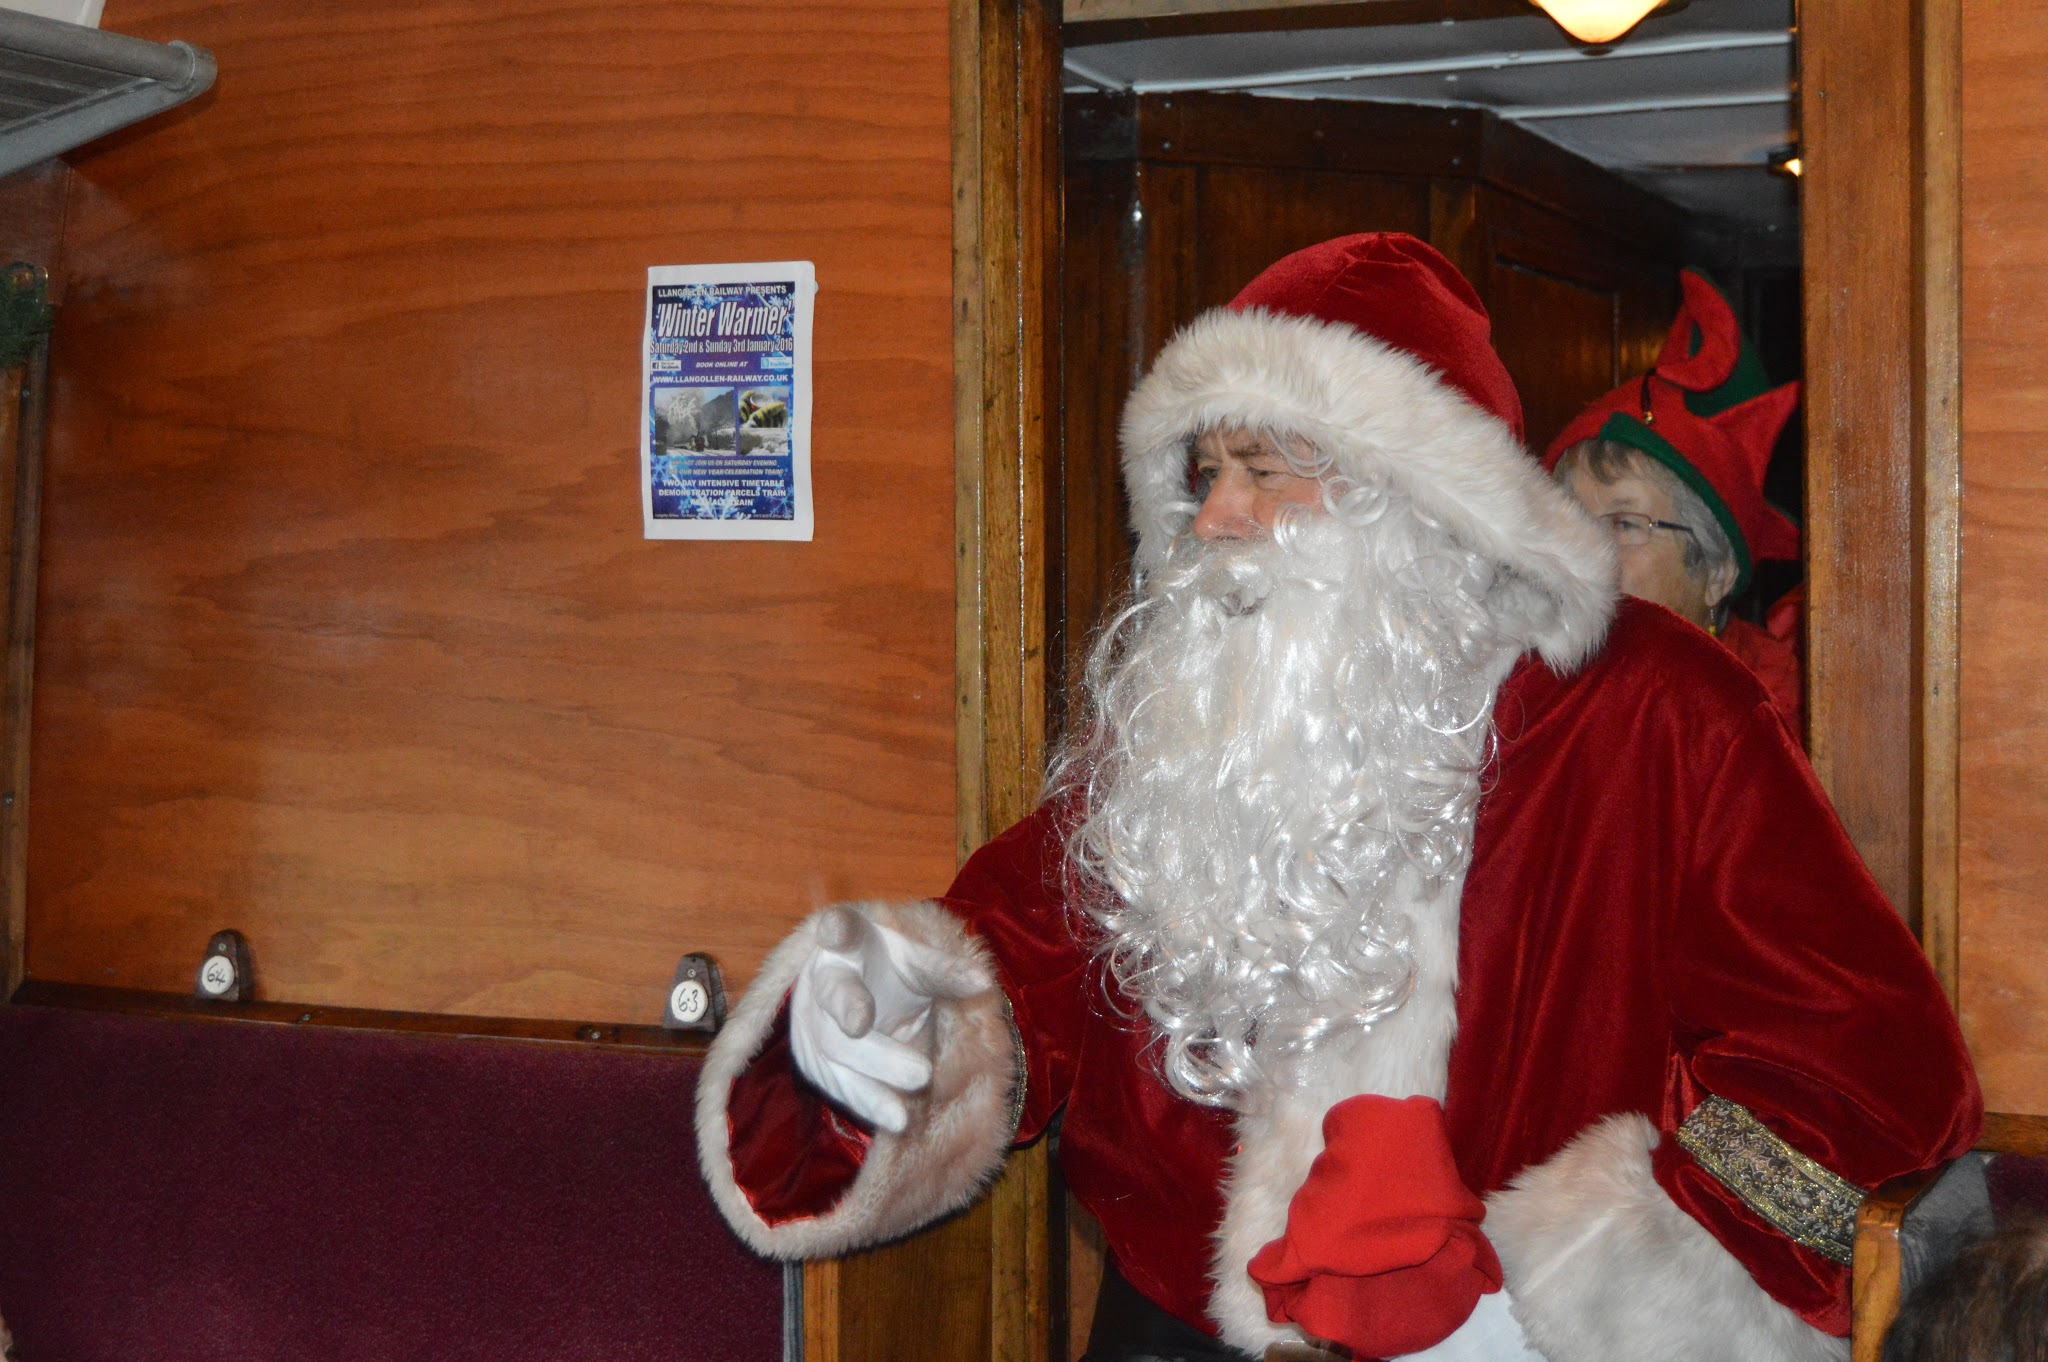 Santa walking through the train carriage